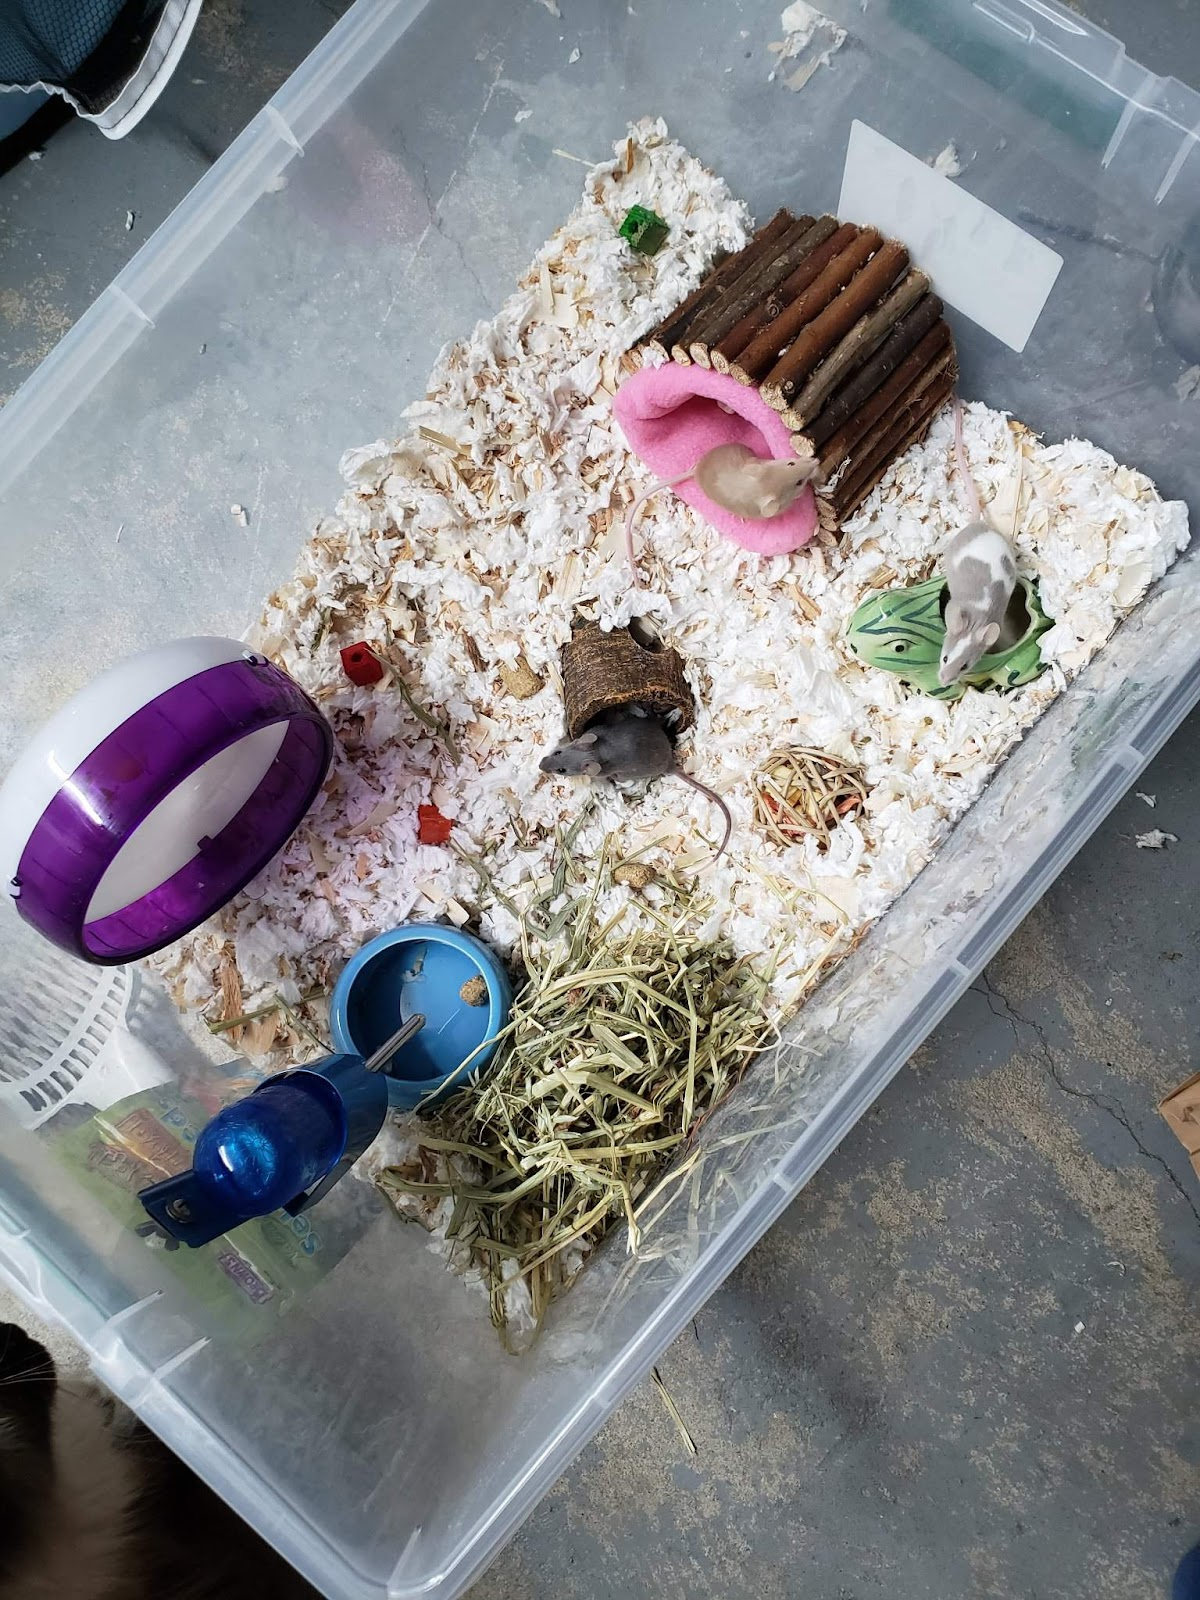 hamster mouse mice rat in a cage by itself dopamine happy rat